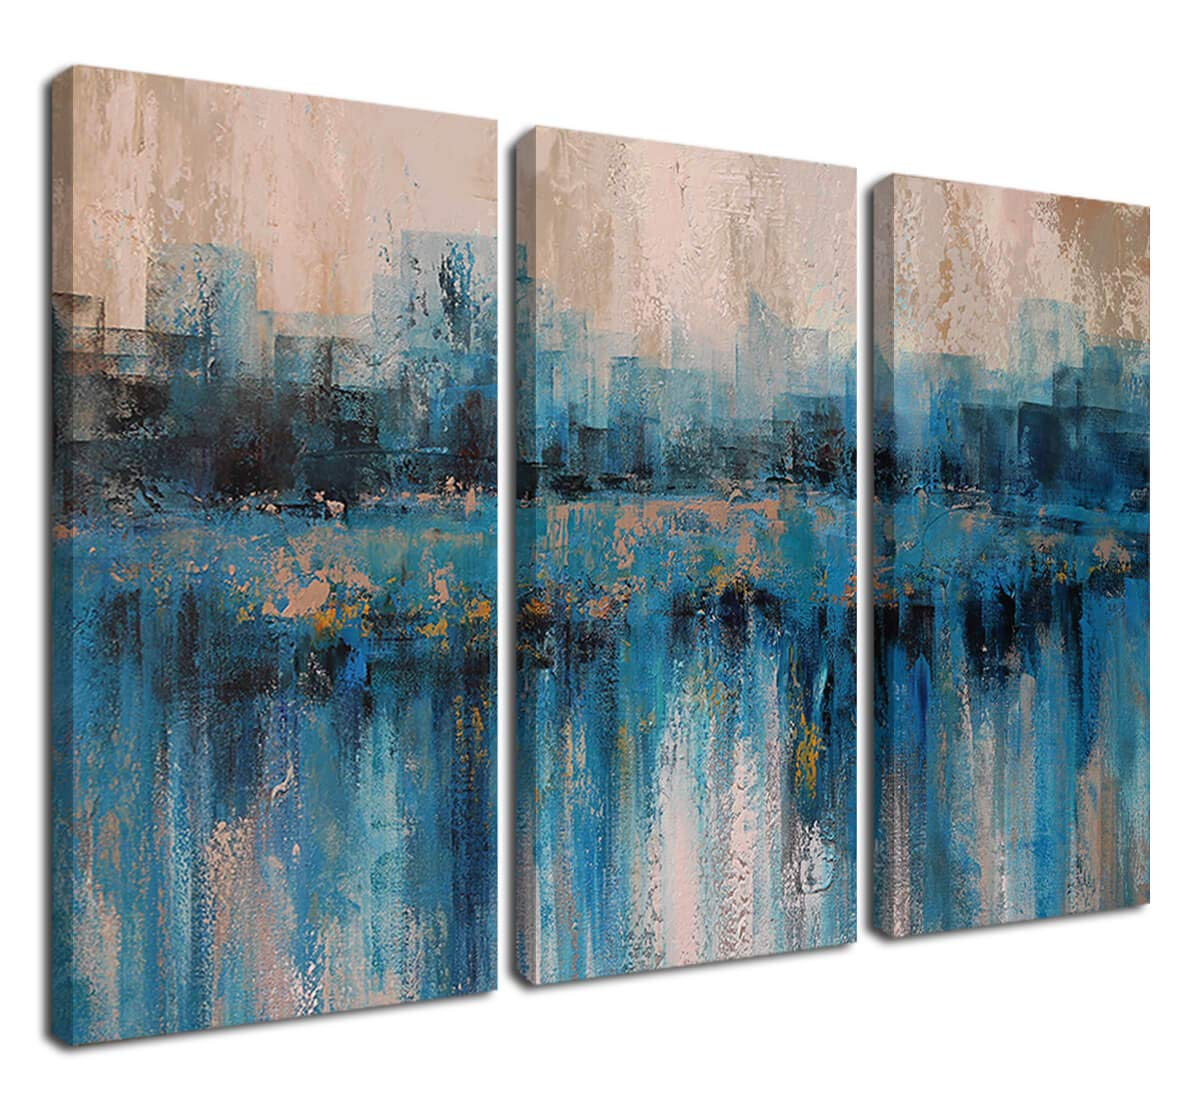 Canvas Wall Art Prints Abstract Textured Cityscape Painting Artwork Grey Blue Tones 3 Panels/Set Large Size Framed Pictures Ready to Hang for Living Room Bedroom Office Kitchen Decorations 16''x32''x3